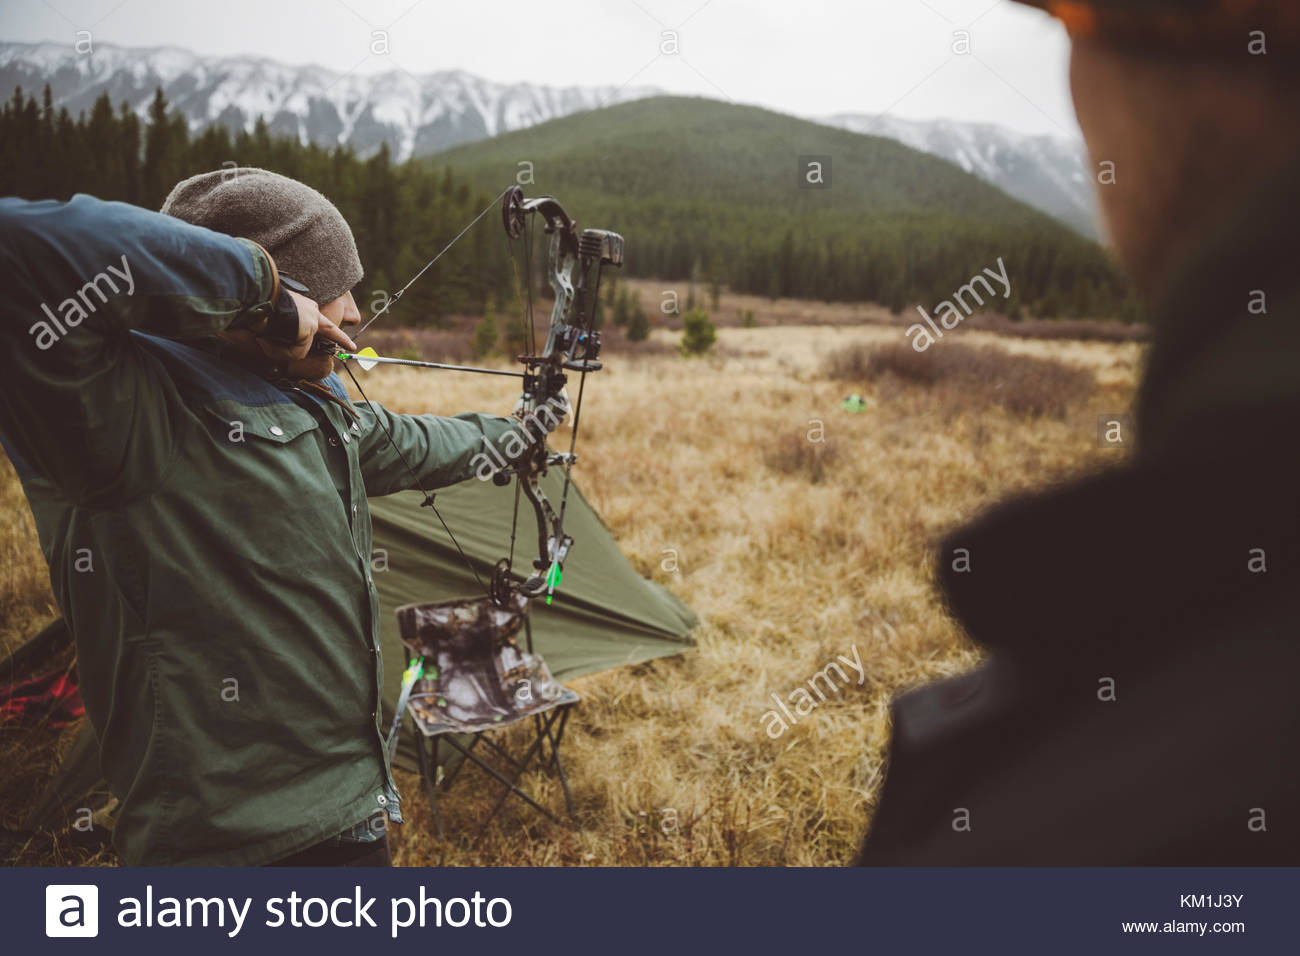 Male hunter aiming hunting compound bow in remote field below mountains - Stock Image